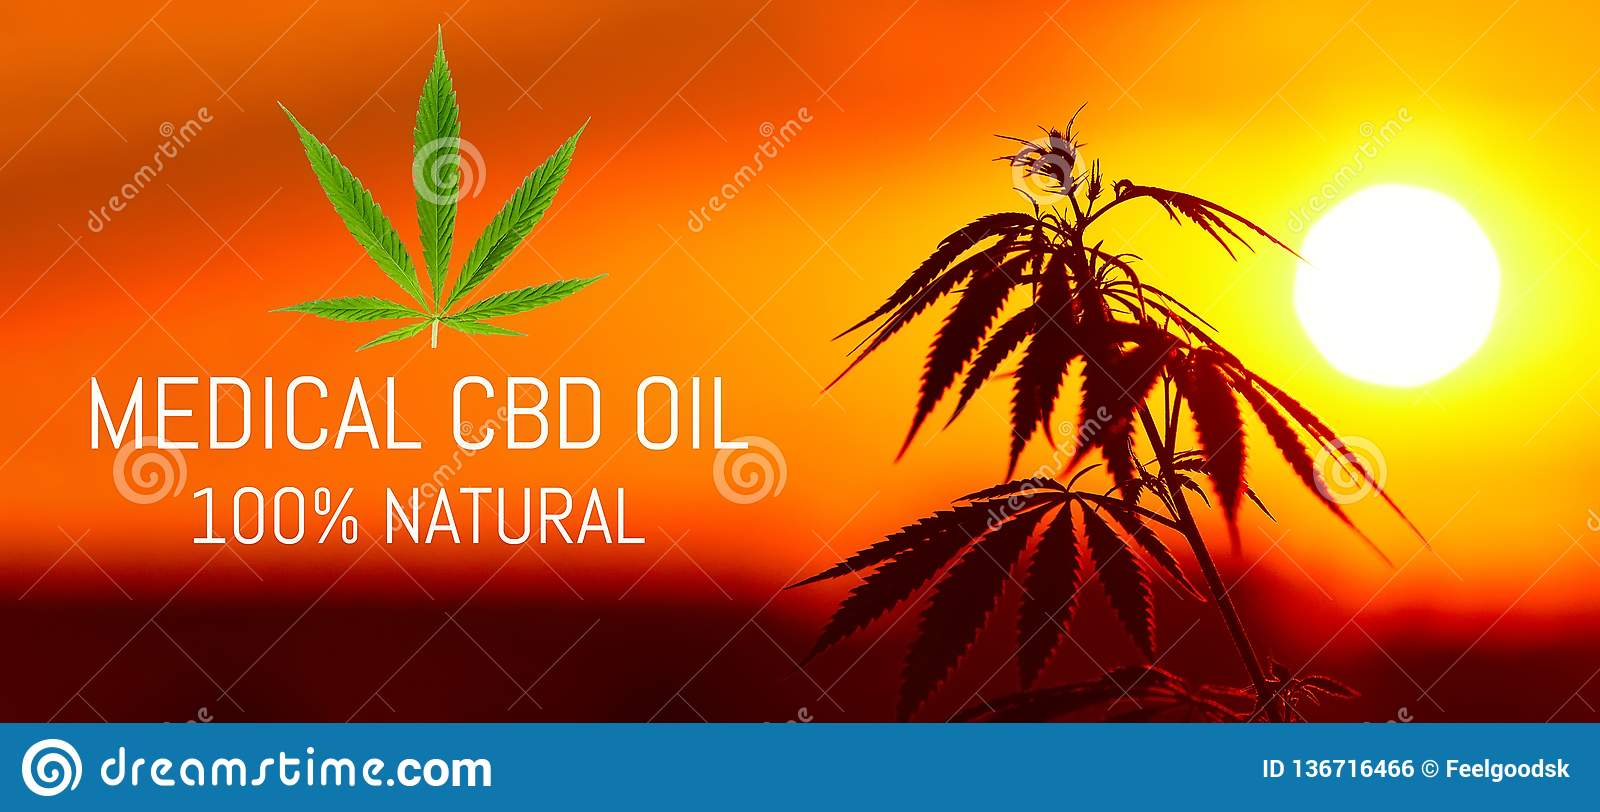 Growing Premium Medical Cannabis, CBD Oil Hemp Products  Natural